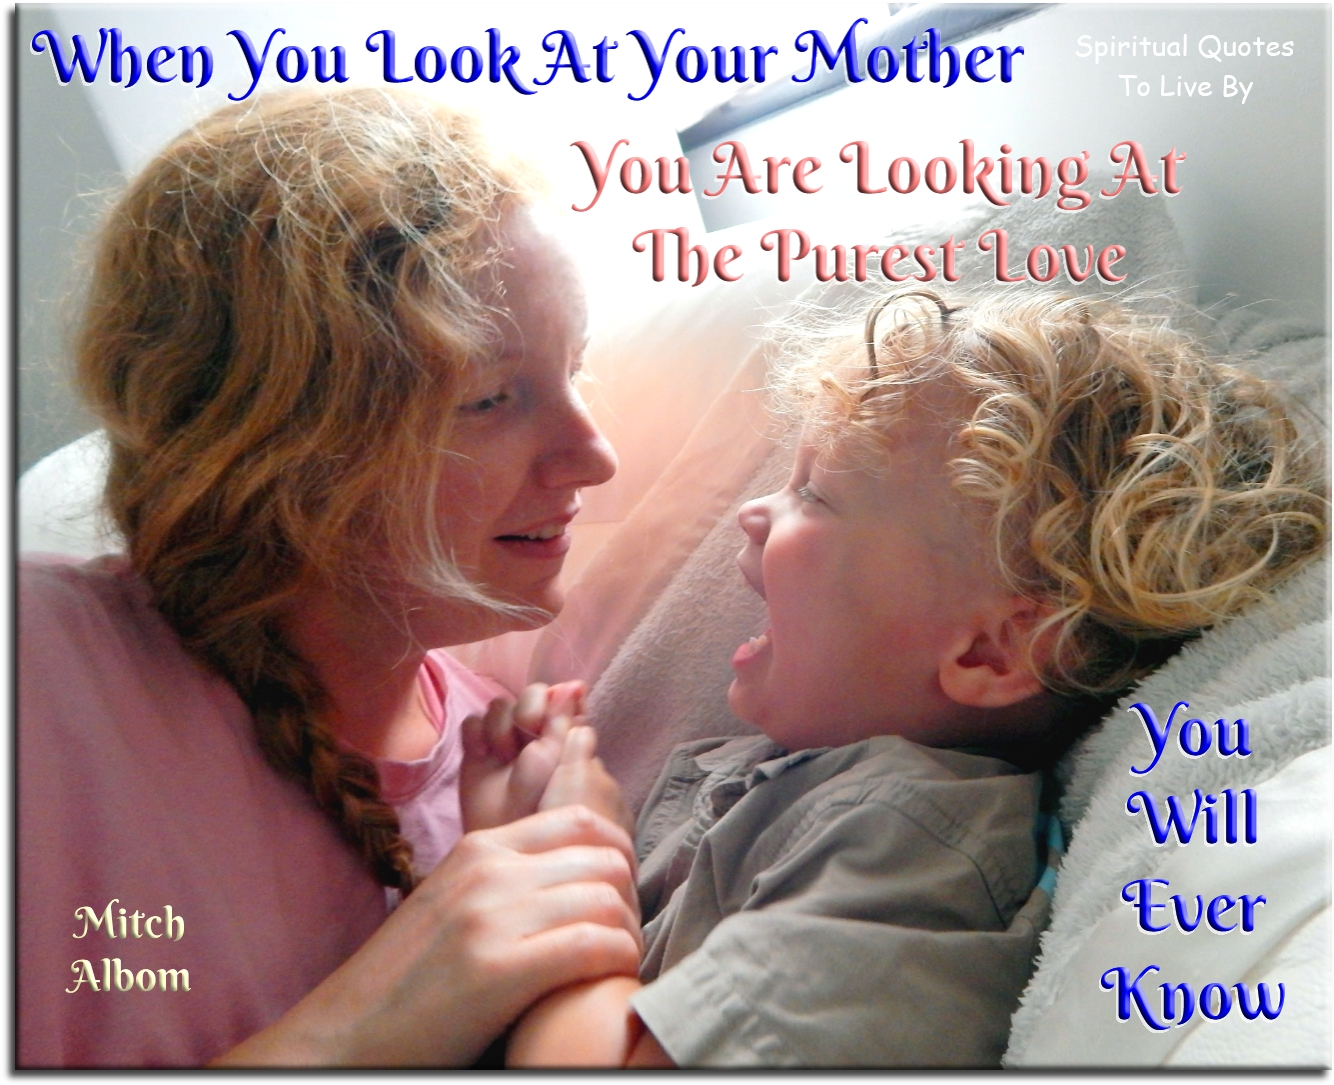 Mitch Albom quote: When you look at your mother, you are looking at the purest love you will ever know. - Spiritual Quotes To Live By